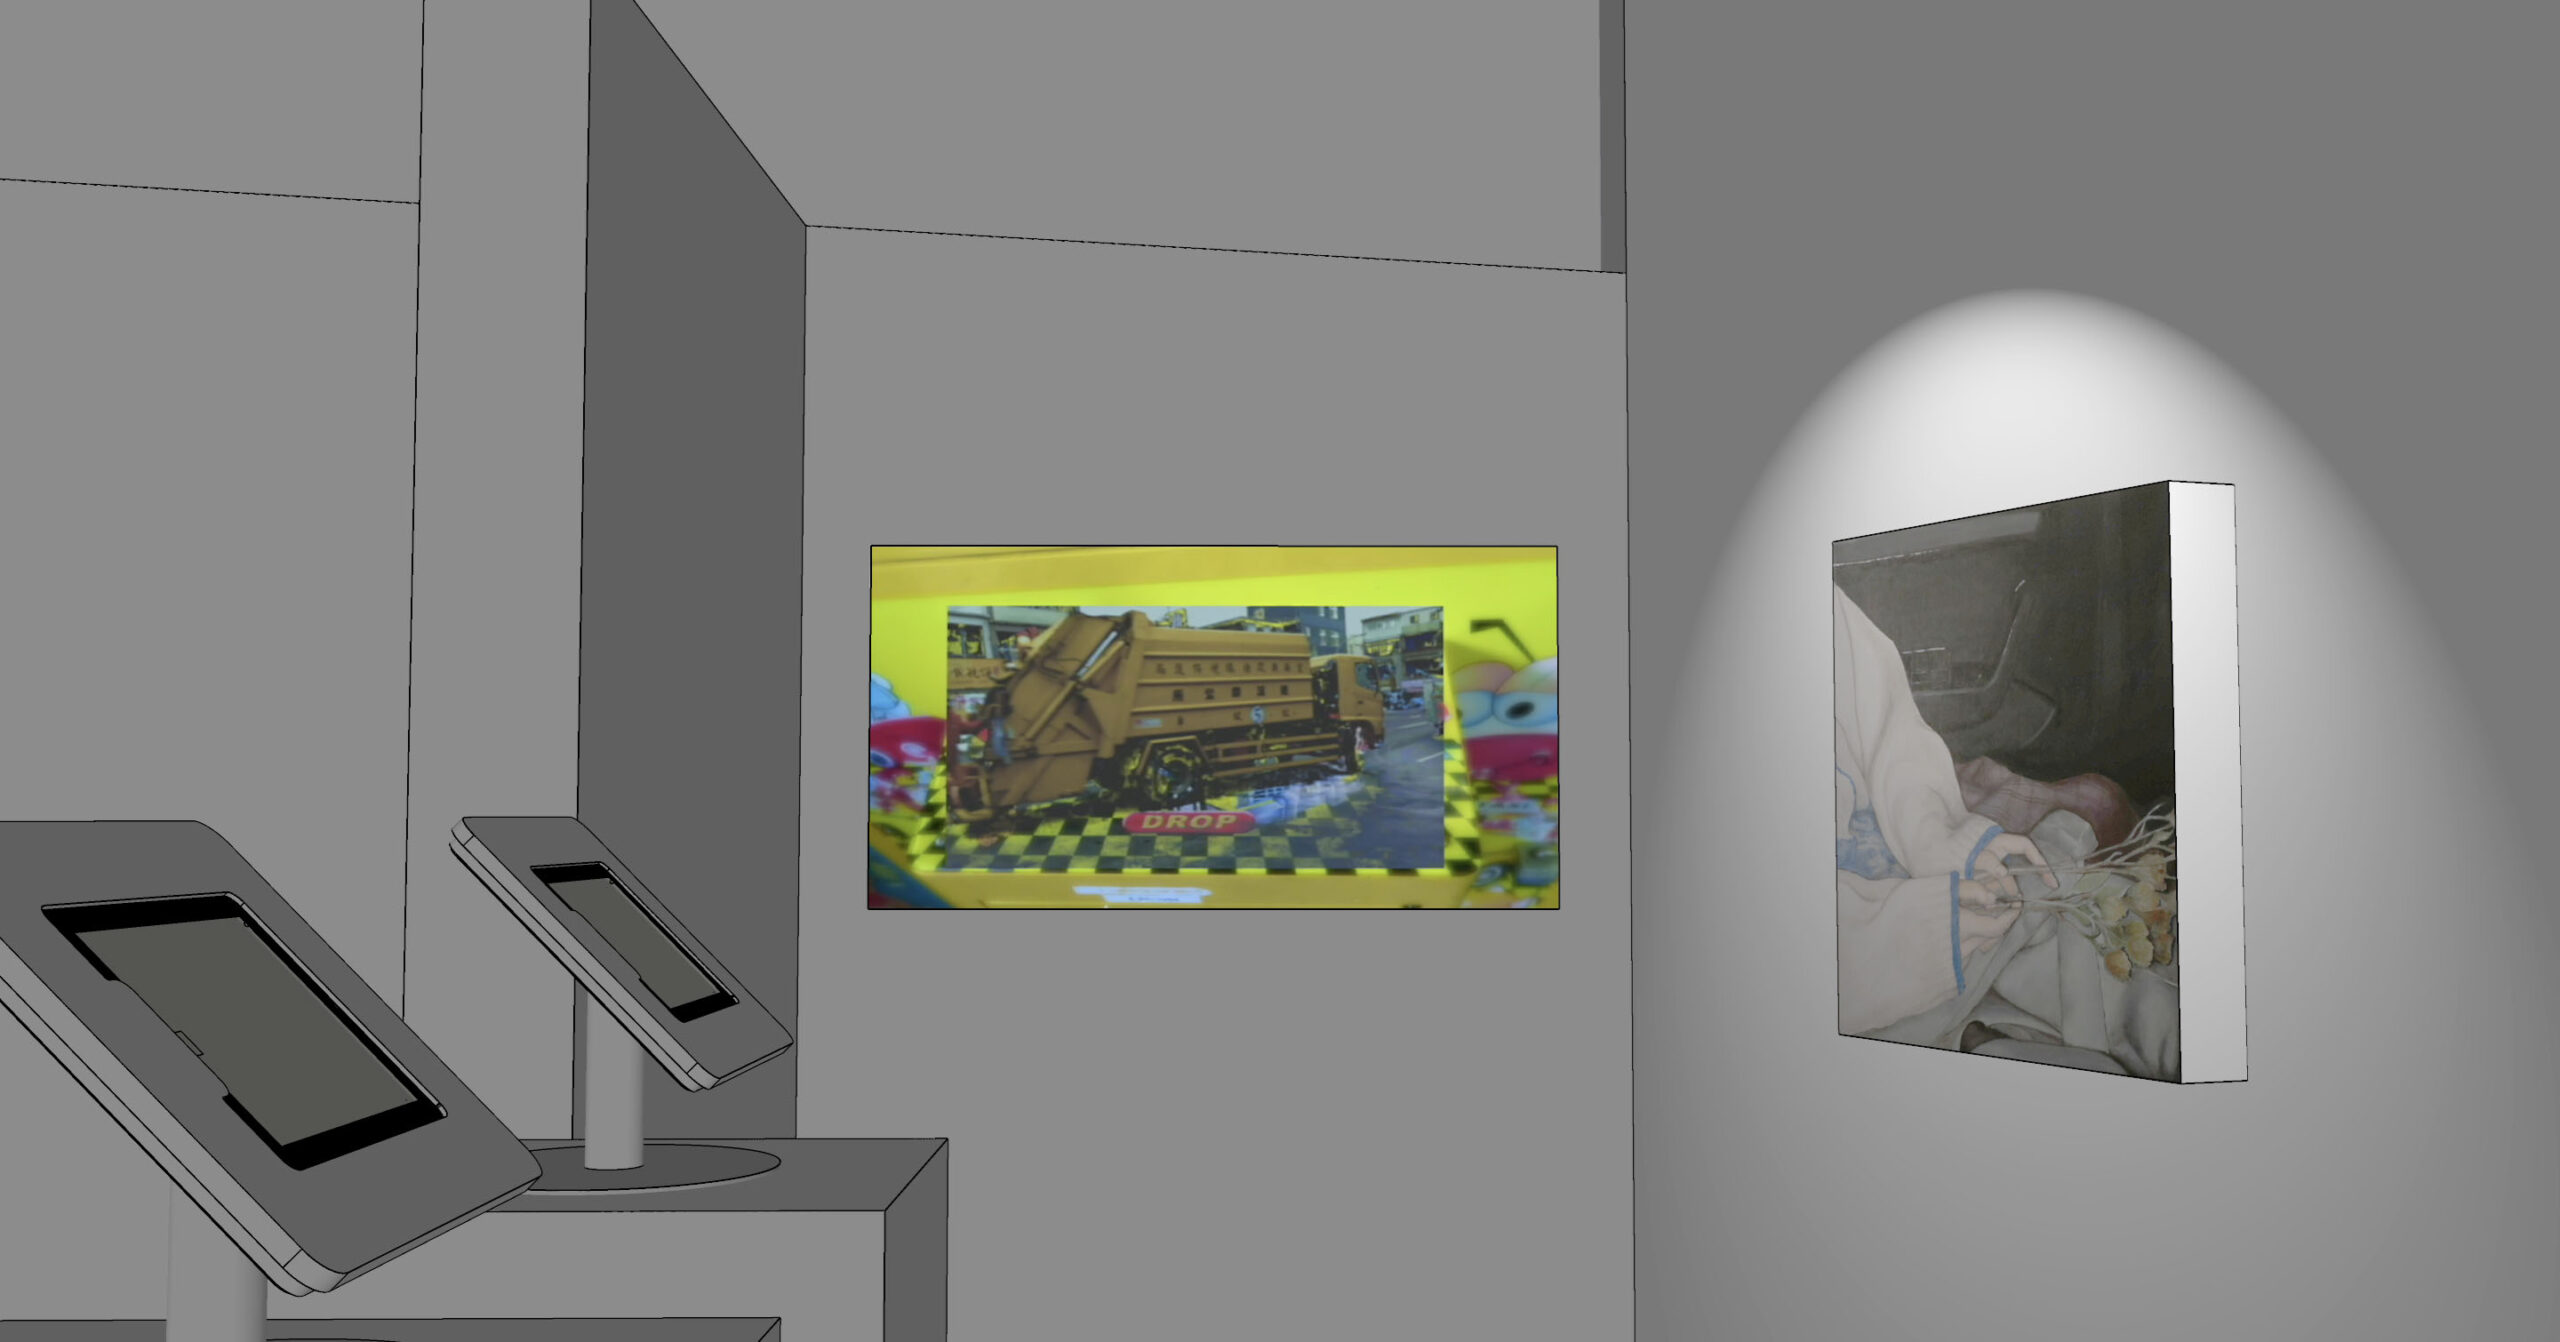 Video projection in virtual gallery. Video is a sort of collage of cartoon imagery and a garbage truck.